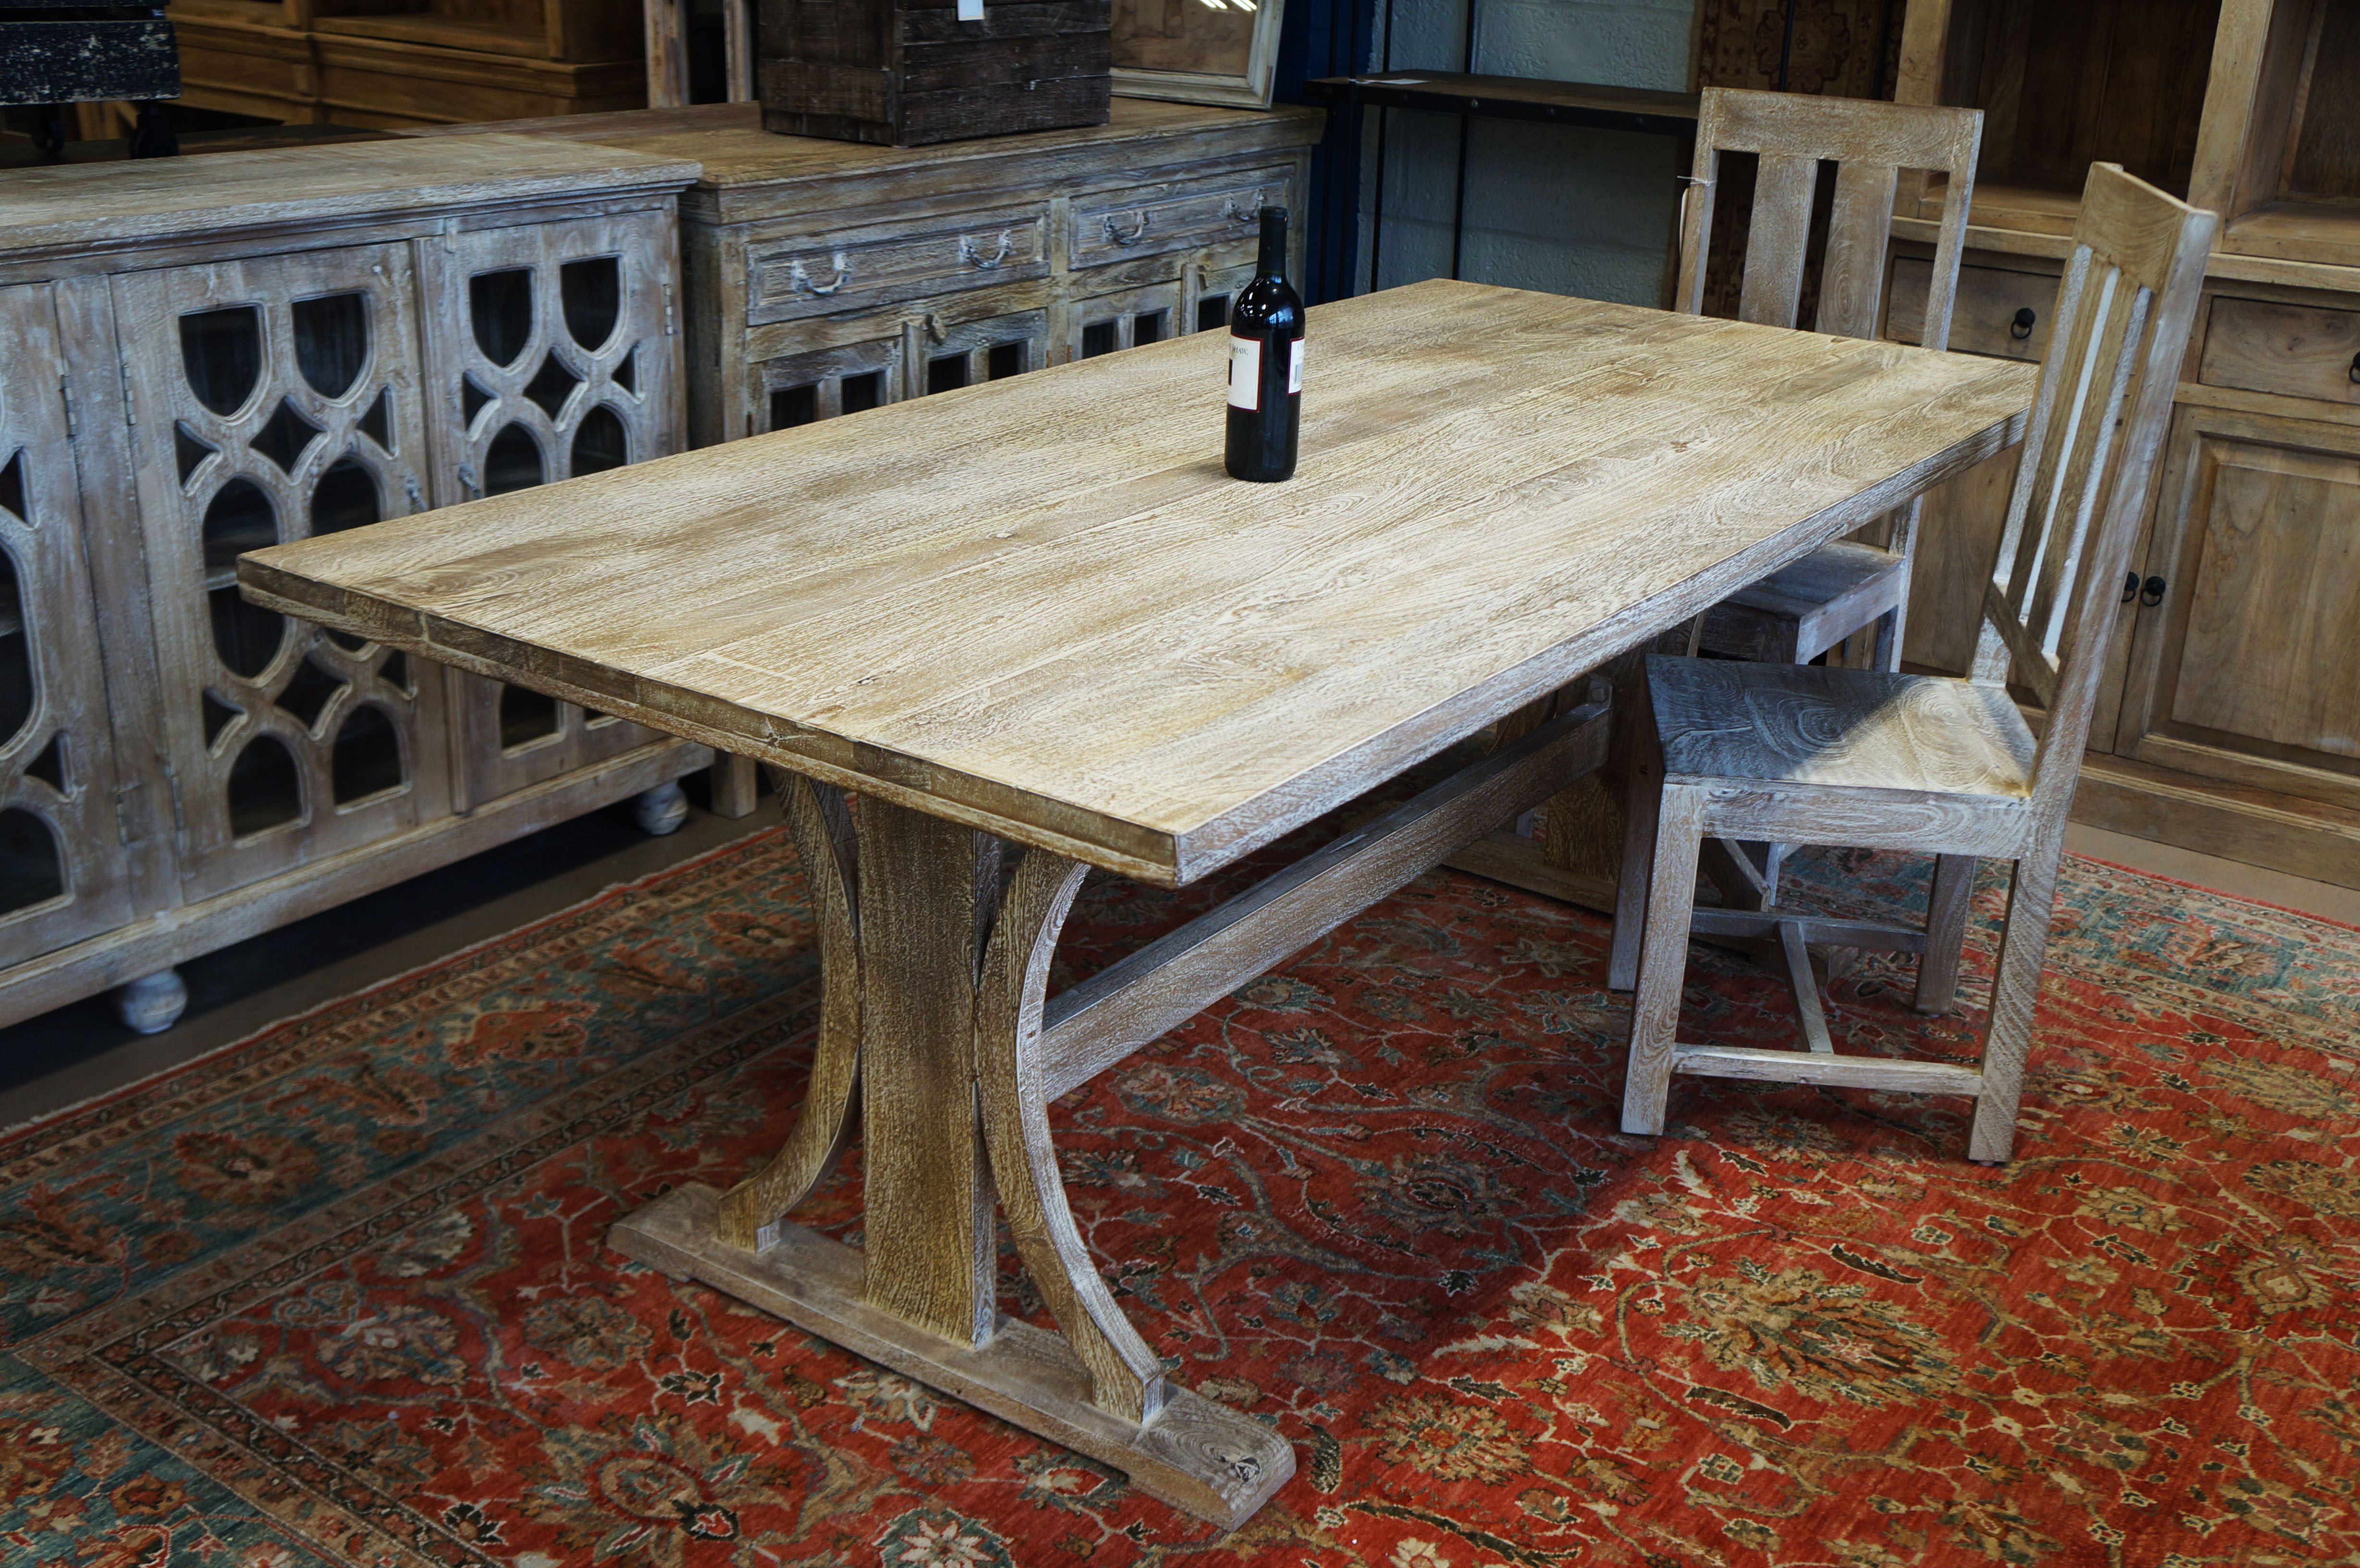 Solid Wood Dining Table With Two Legs In The Center Hand Crafted